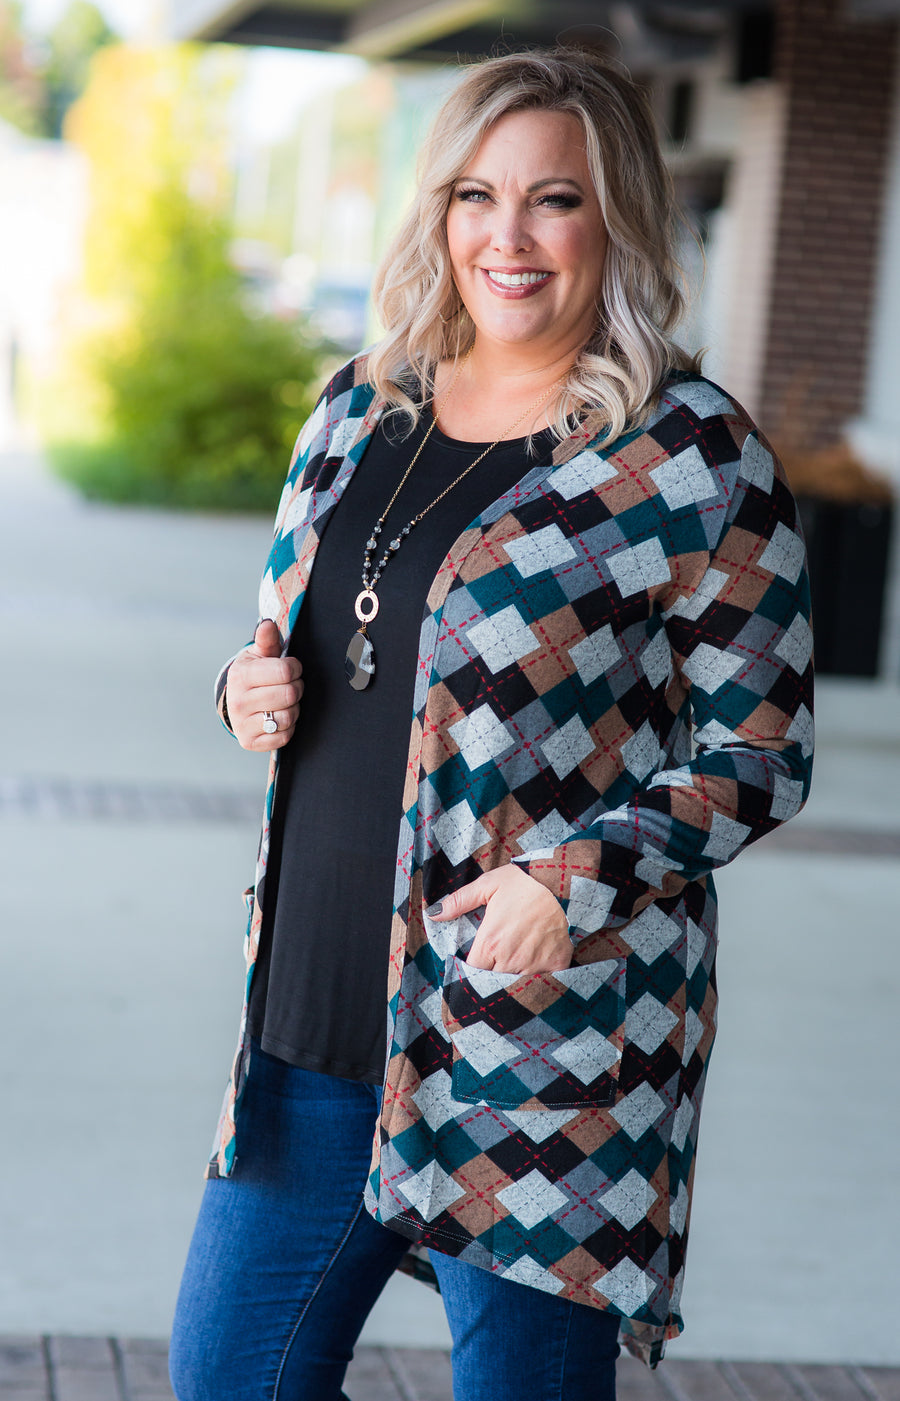 Teal Argyle Favorite Cardigan